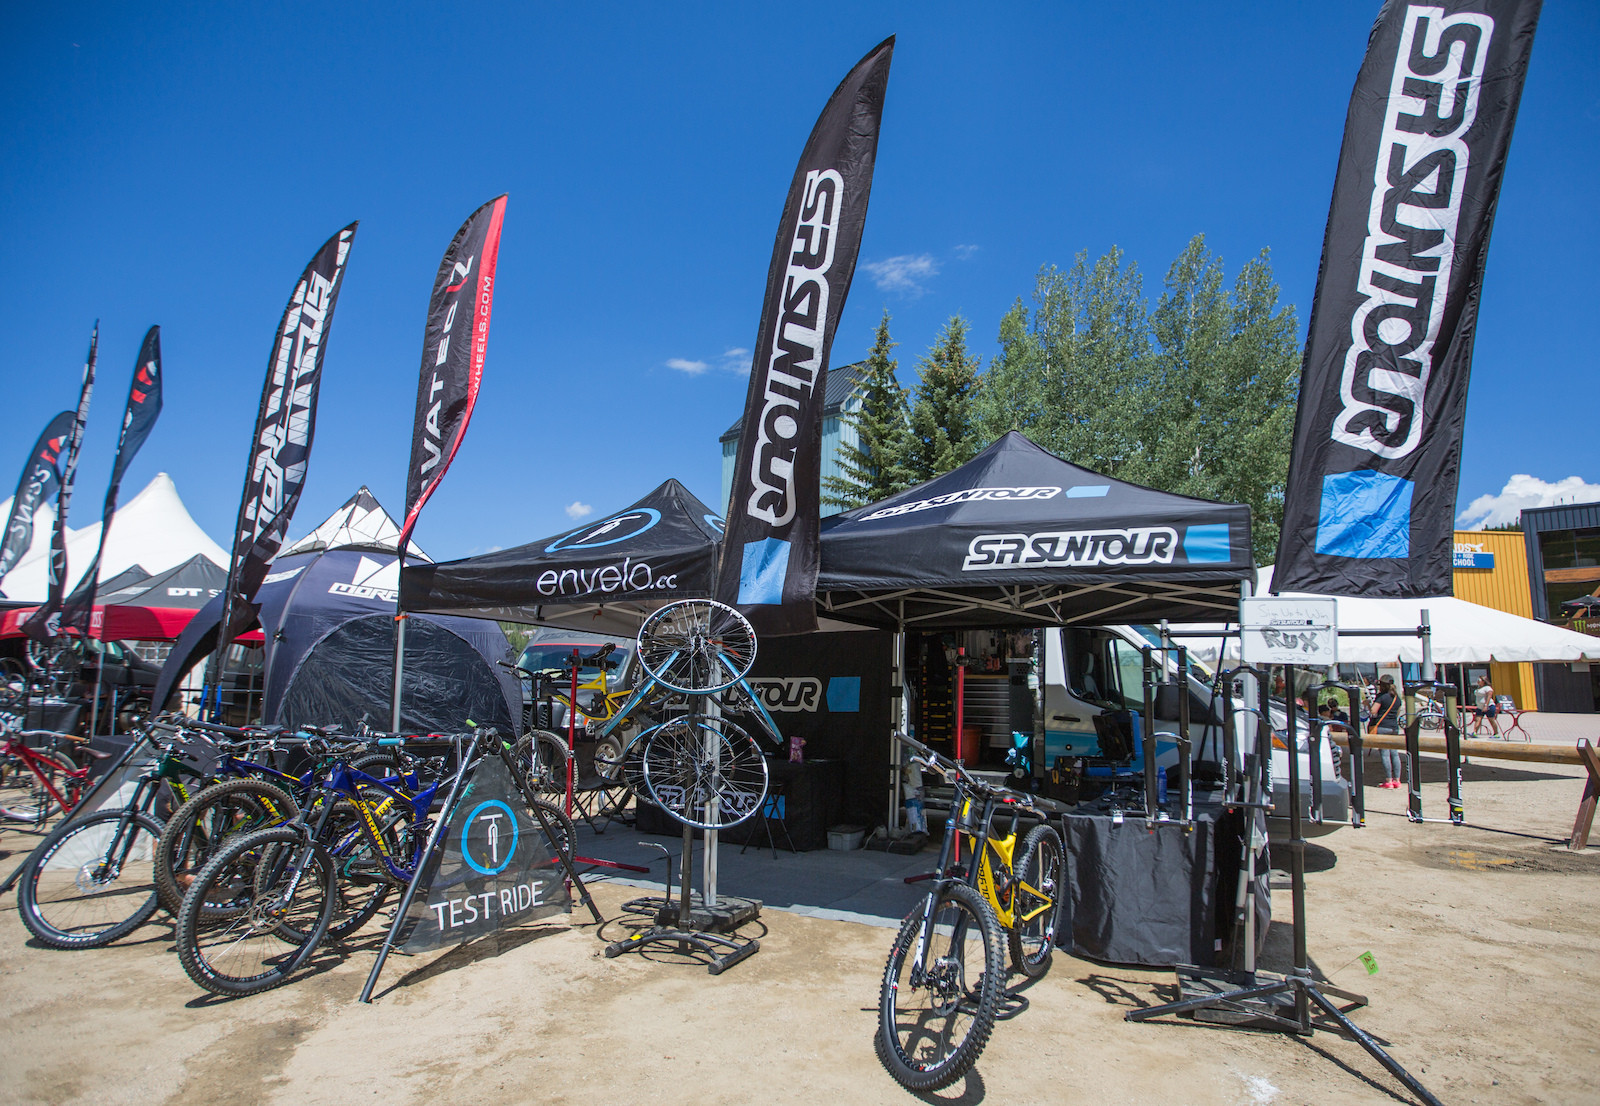 envelo is ready to demo the very best of SR Suntour suspension and Novatec wheels.